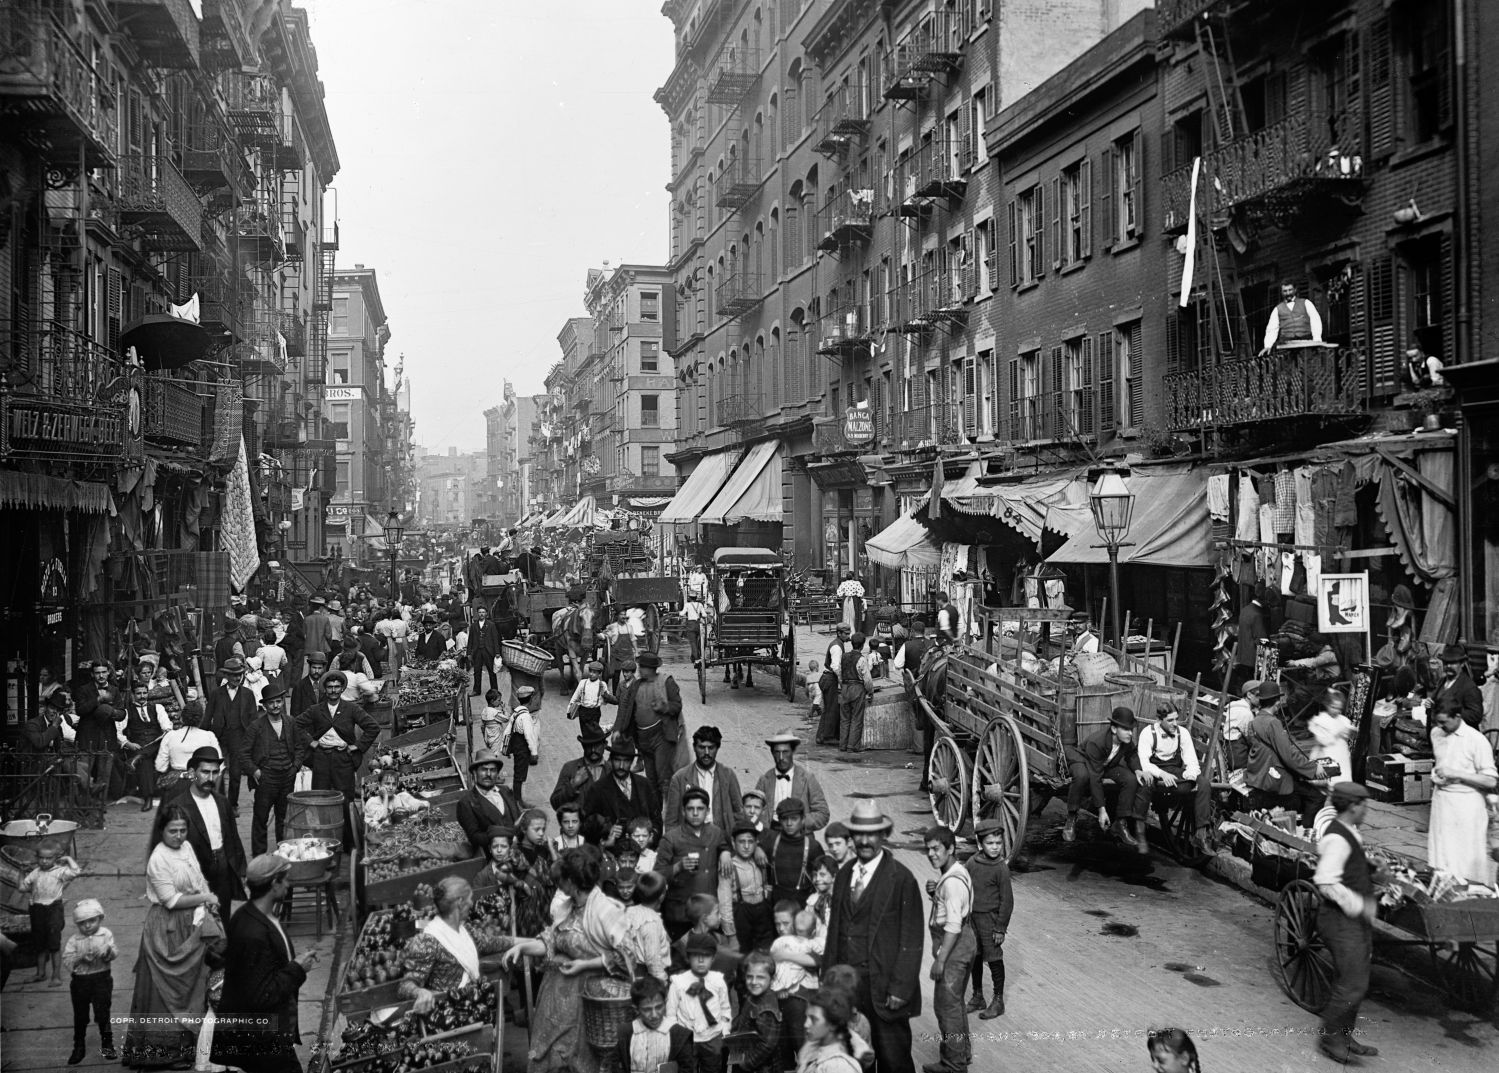 Imigrancka Mulberry Street, 1900 rok (fot. Biblioteka Kongresu, Detroit Publishing Company Photograph Collection)